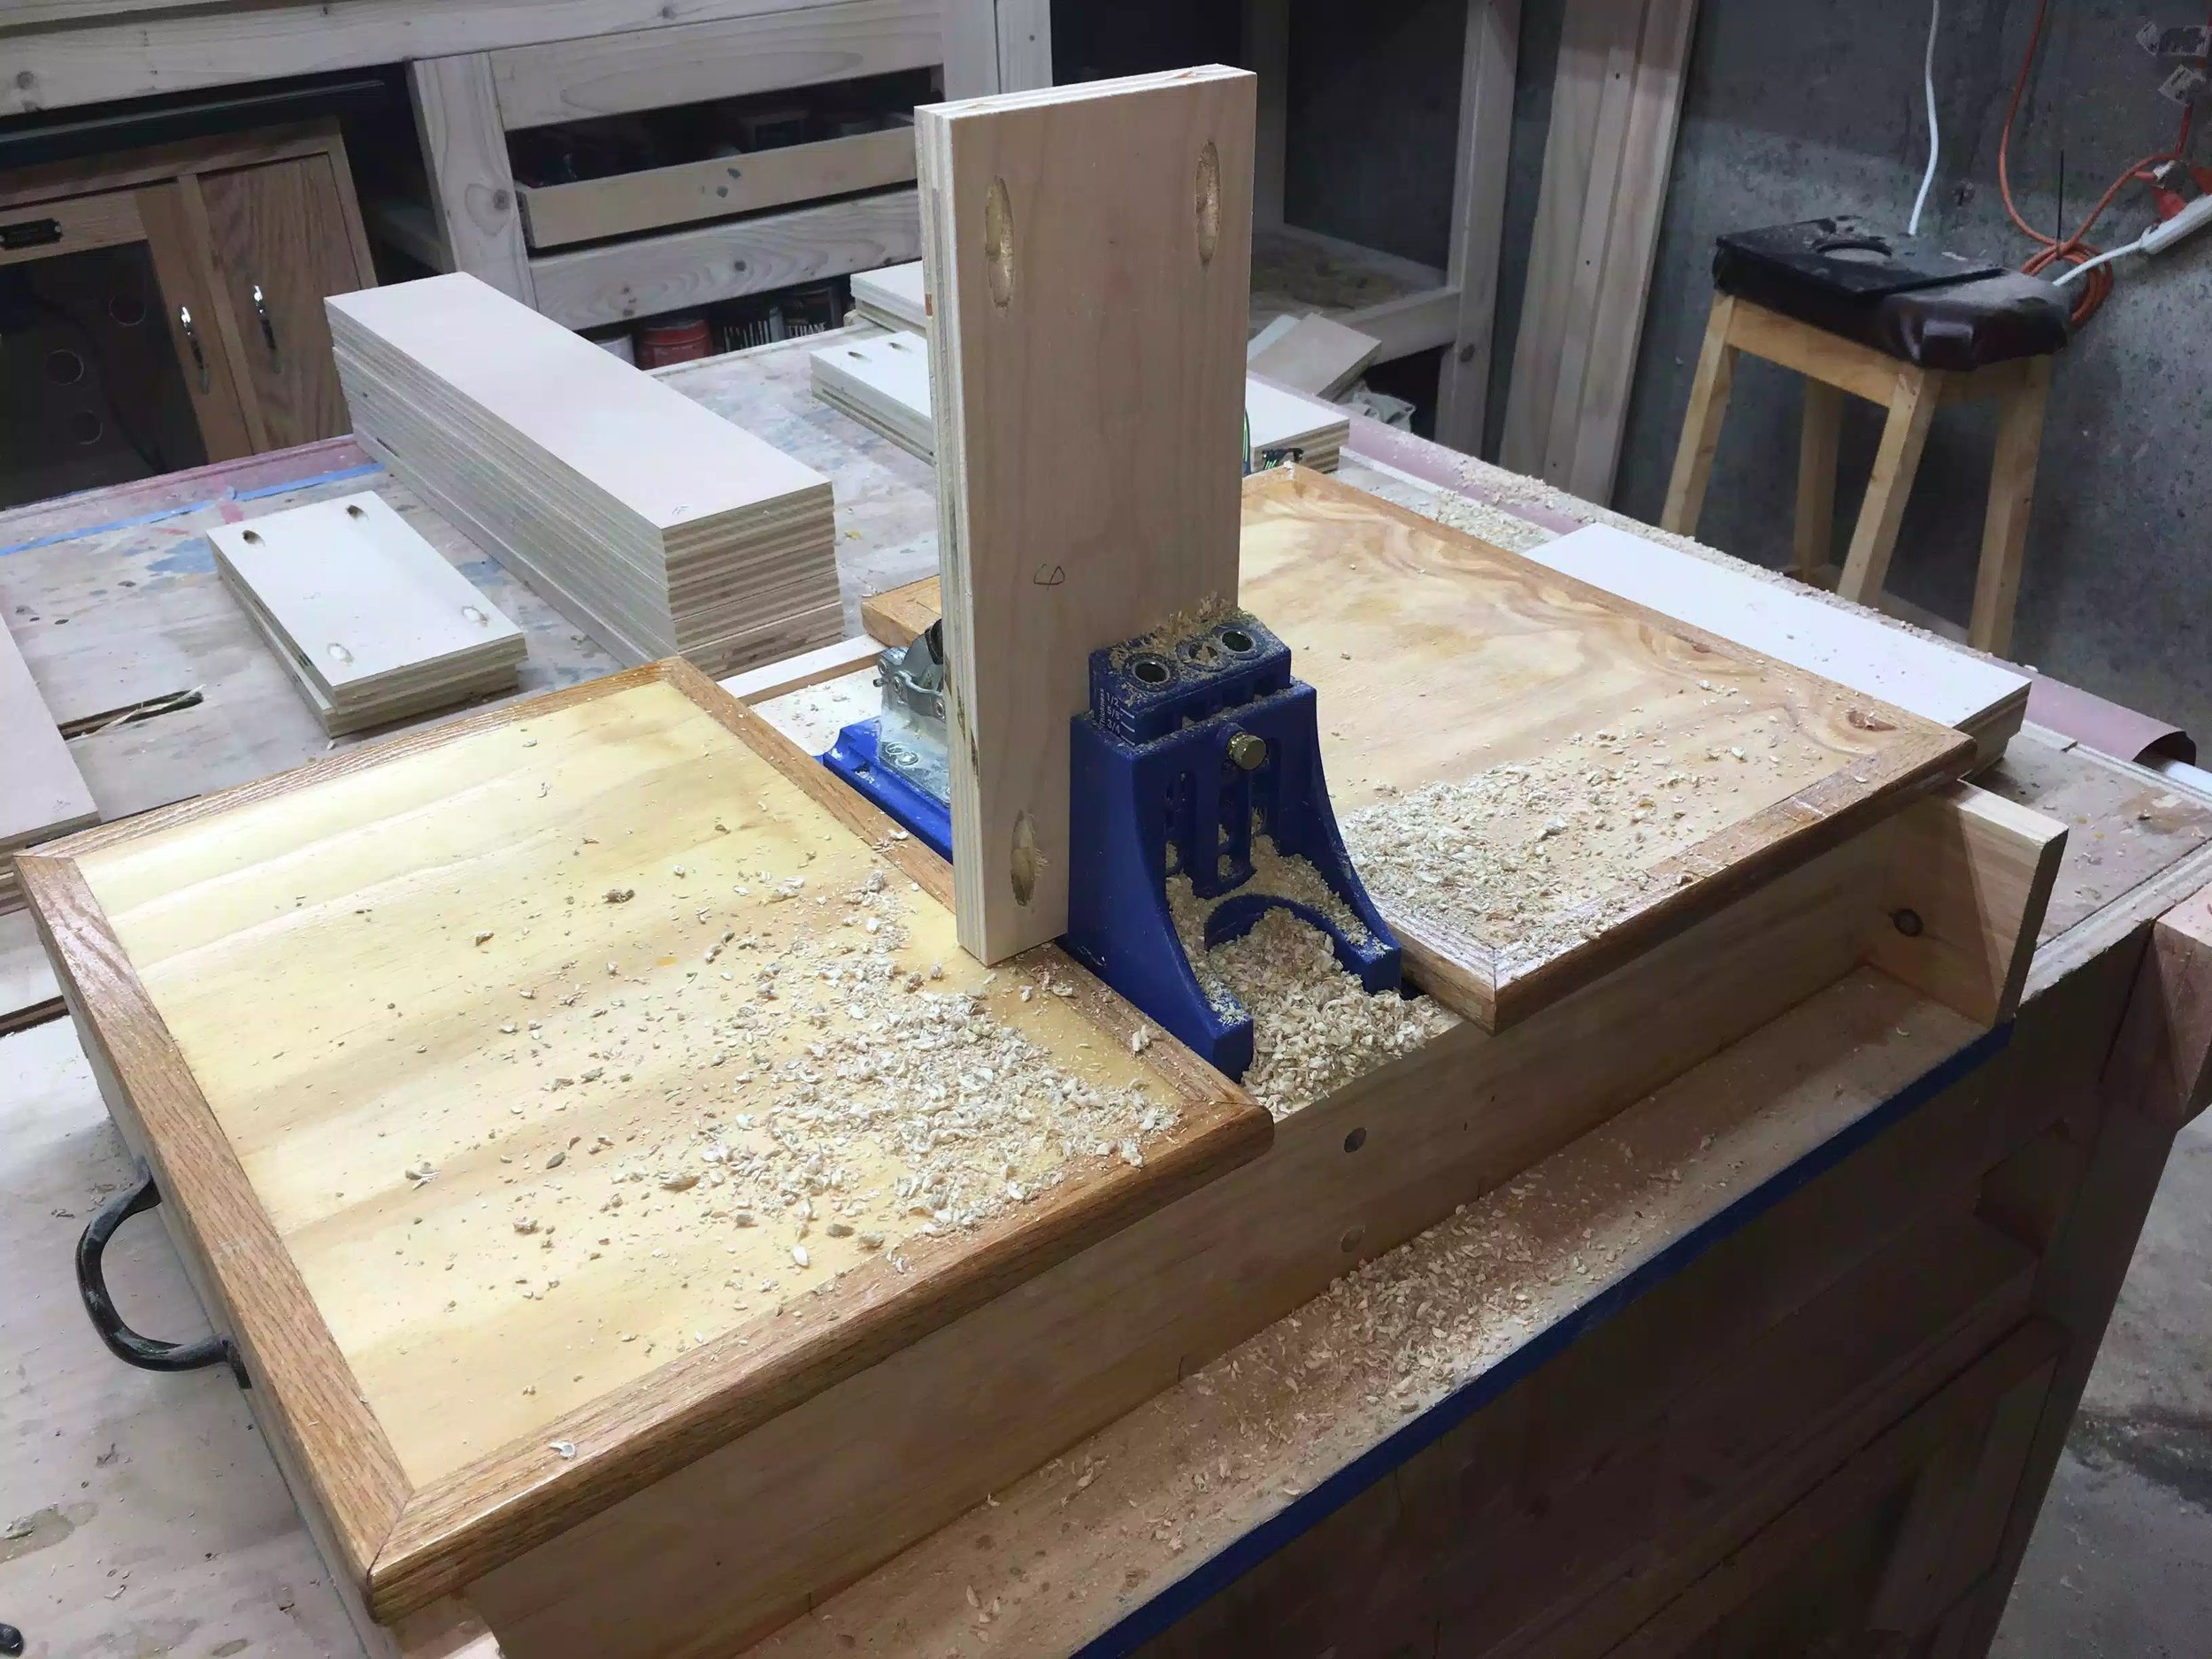 Here is the Kreg Pocket hole jig in action, I didnt bother setting up my dust collection on this